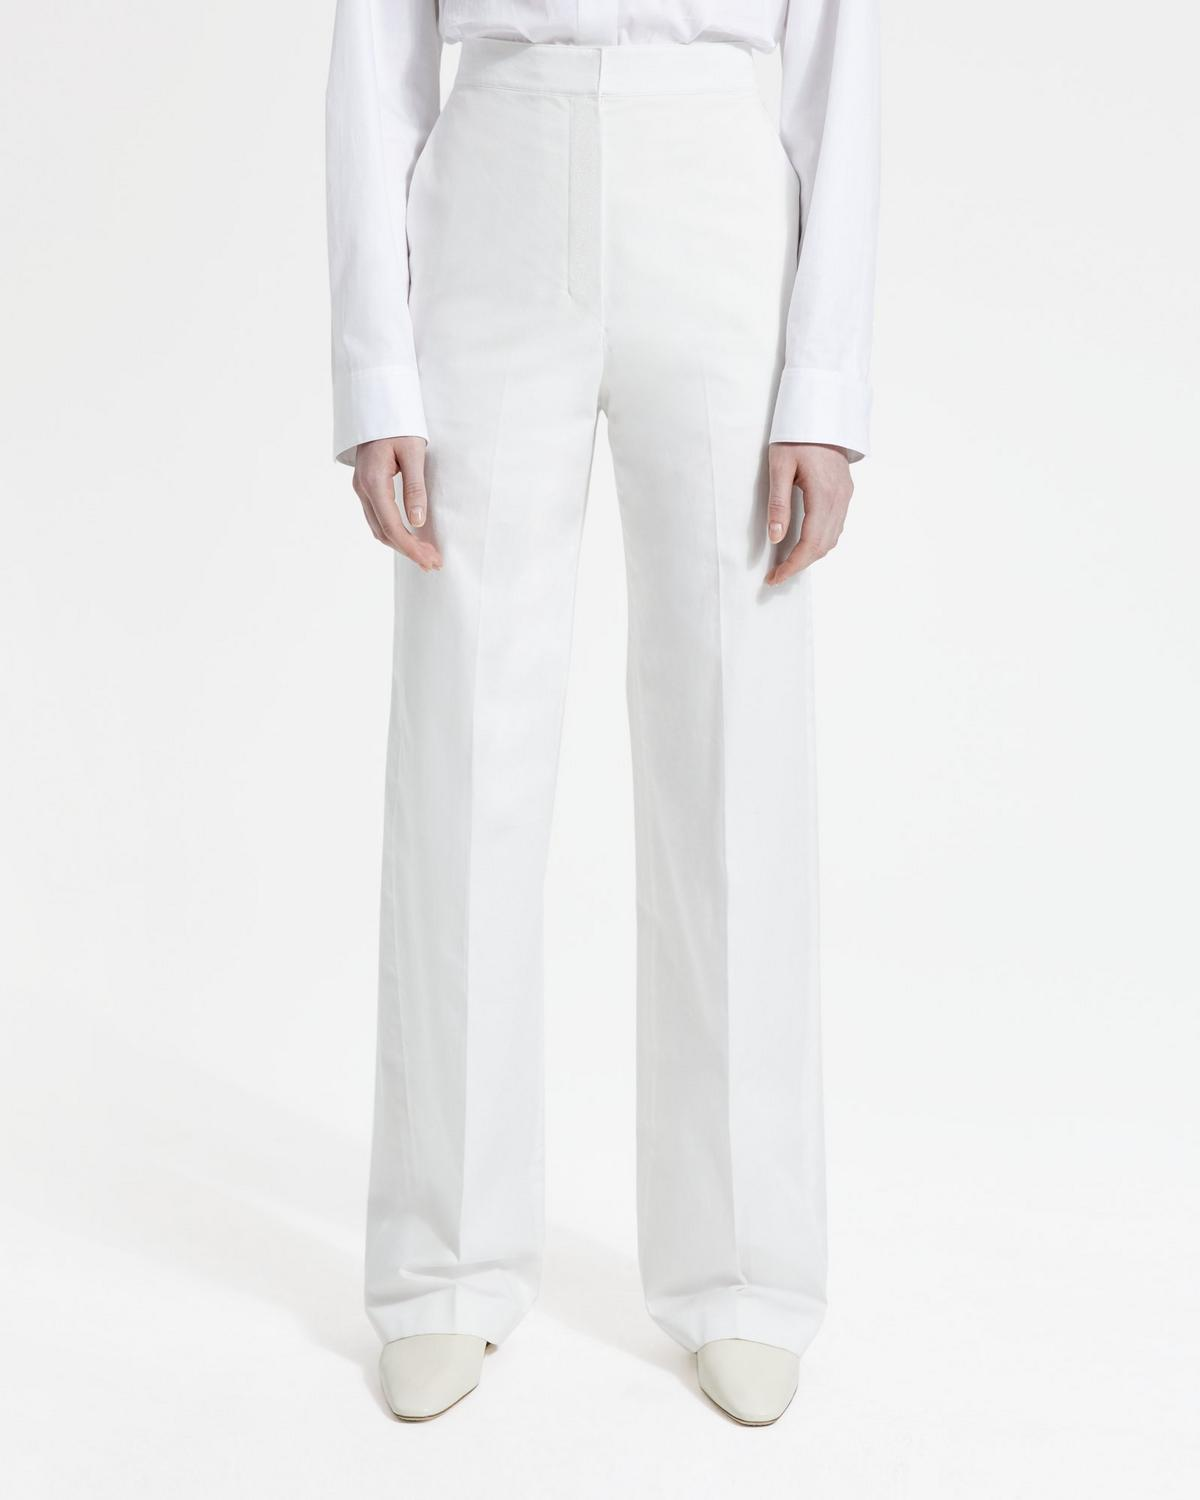 Classic Chino Clean Trouser